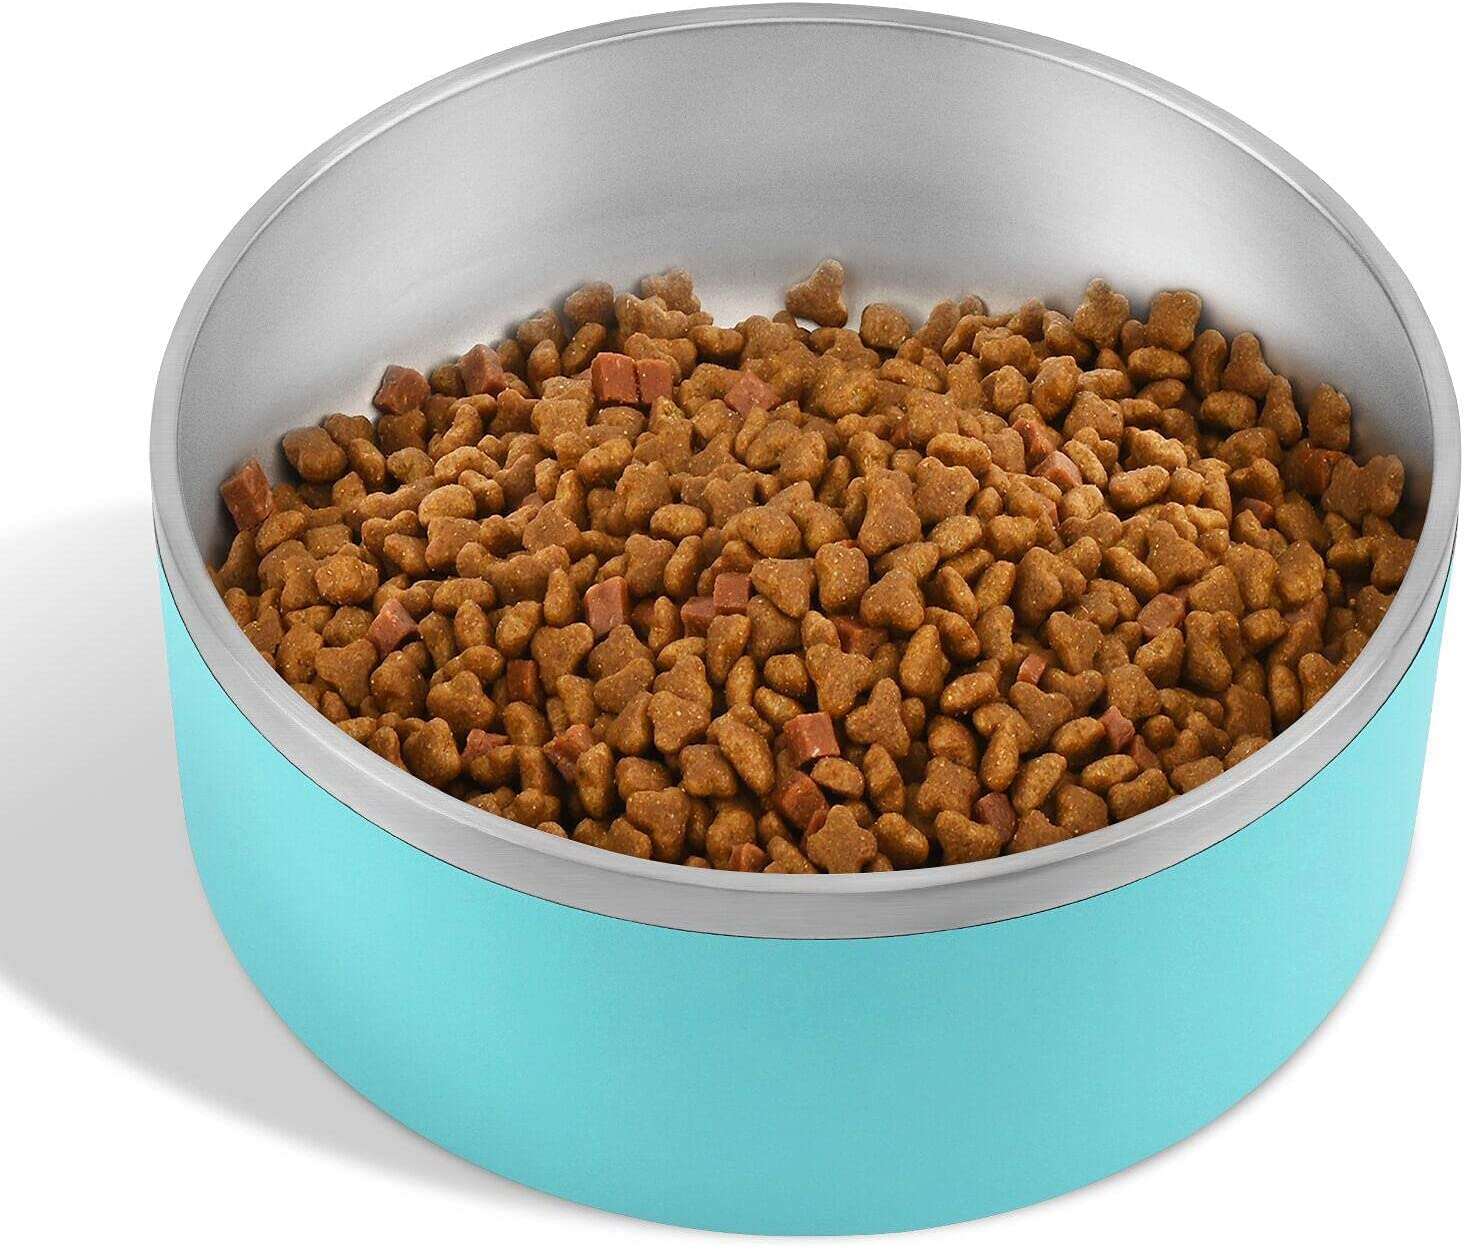 Dog Bowl, Stainless Steel Dog Bowl with 8Pcs Anti-Skid Rubber Stickers, No Spill Food and Water Bowl, Metal Food and Water Dish, Pet Feeder Bowls for Medium Large Dogs, Cats - 64Oz (8 Cup, Aqua Blue)